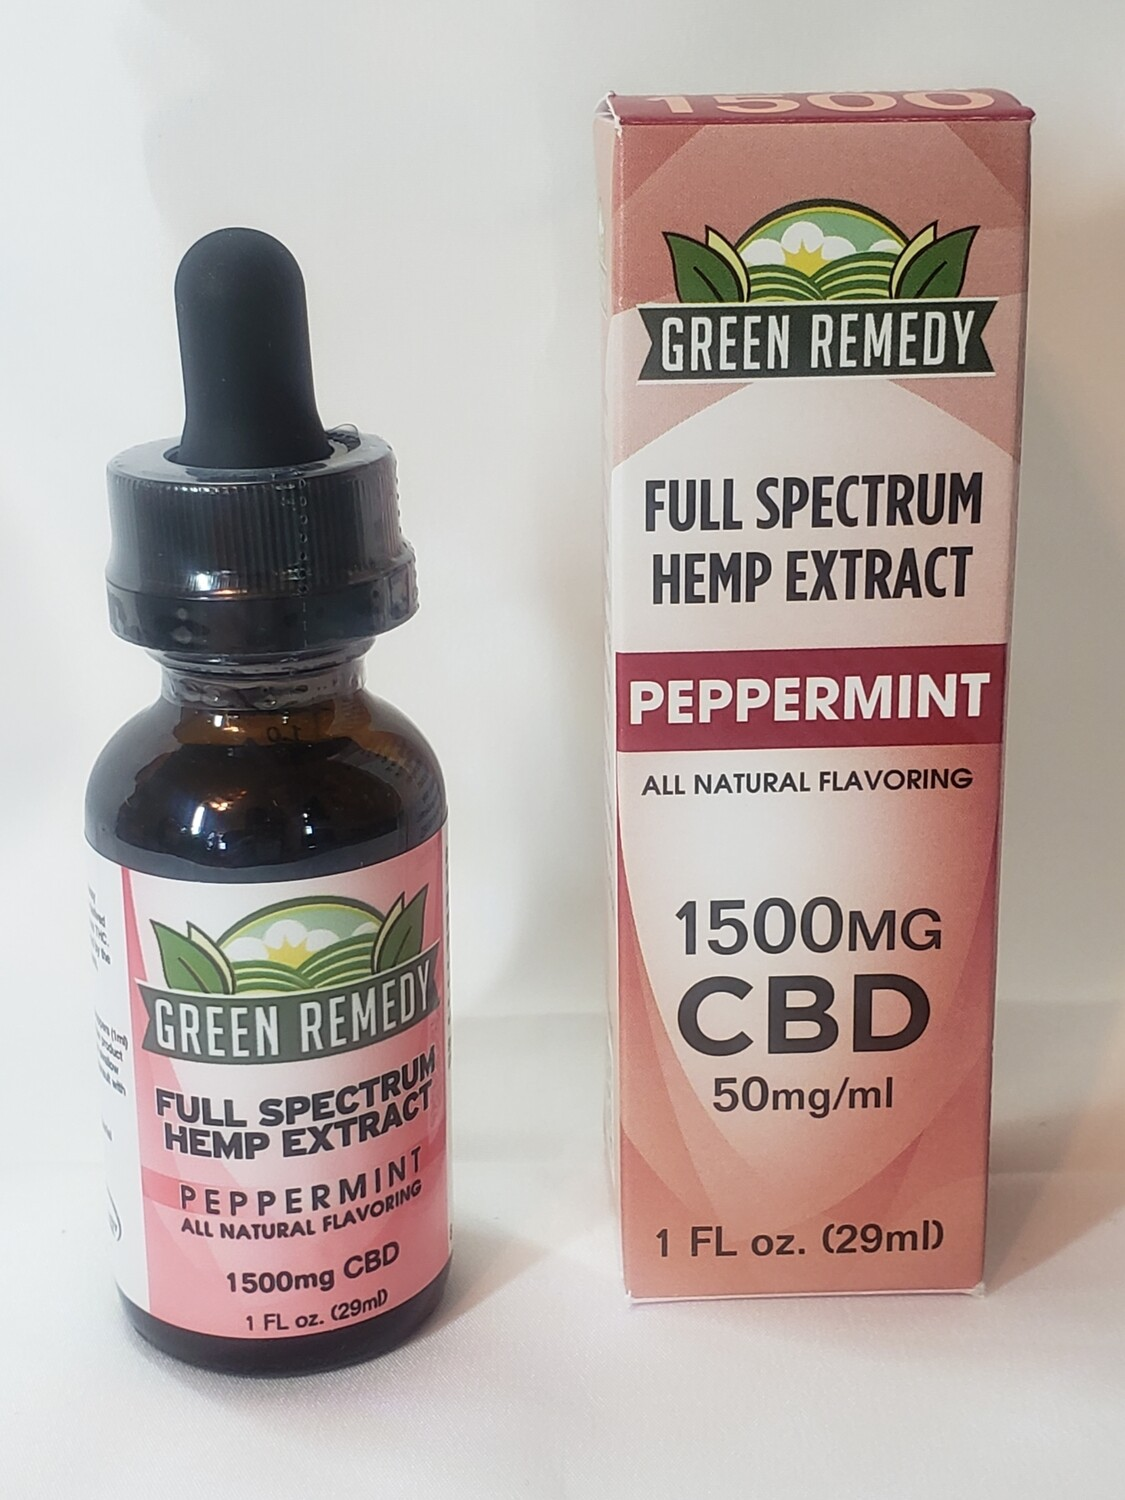 1500 Mg. Peppermint Cannabidiol from Hemp